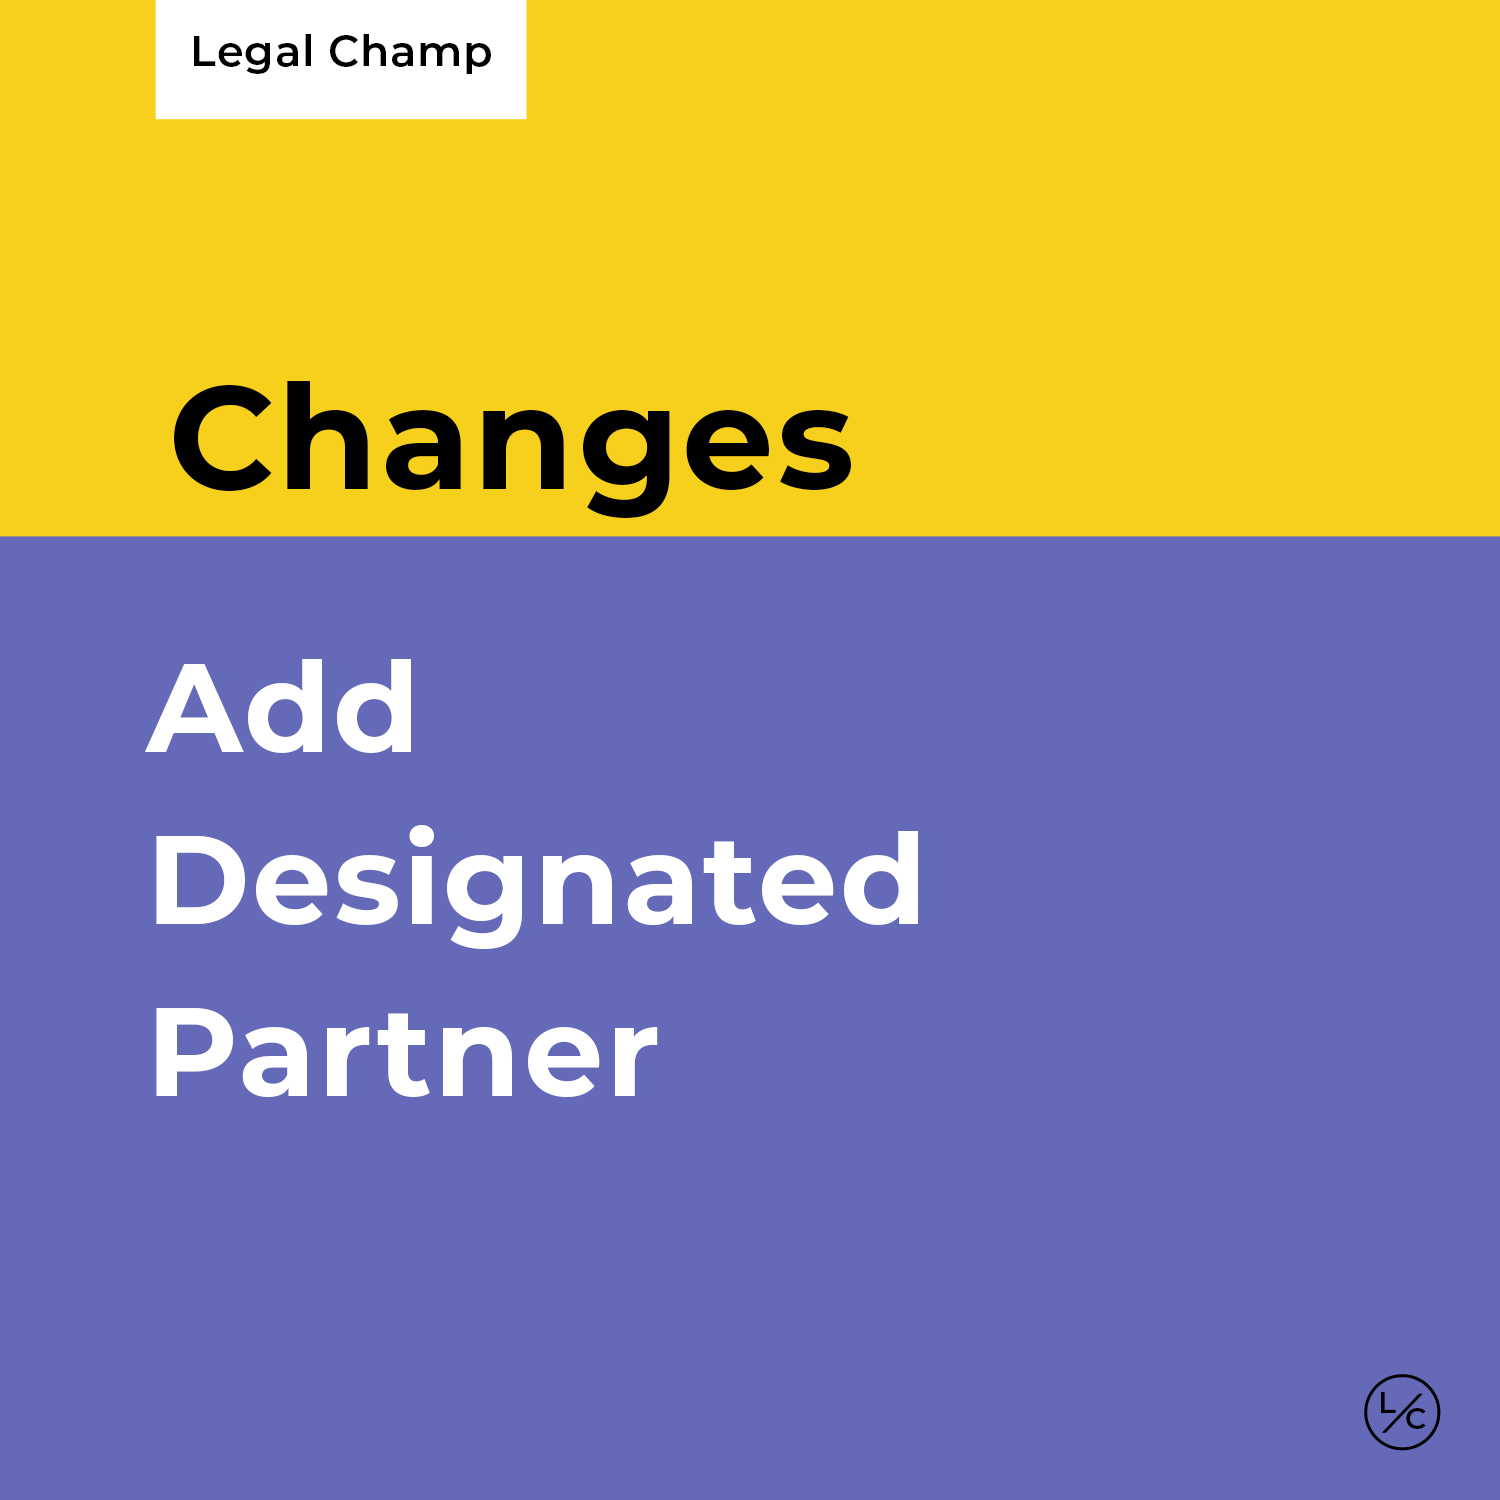 Add Designated Partner